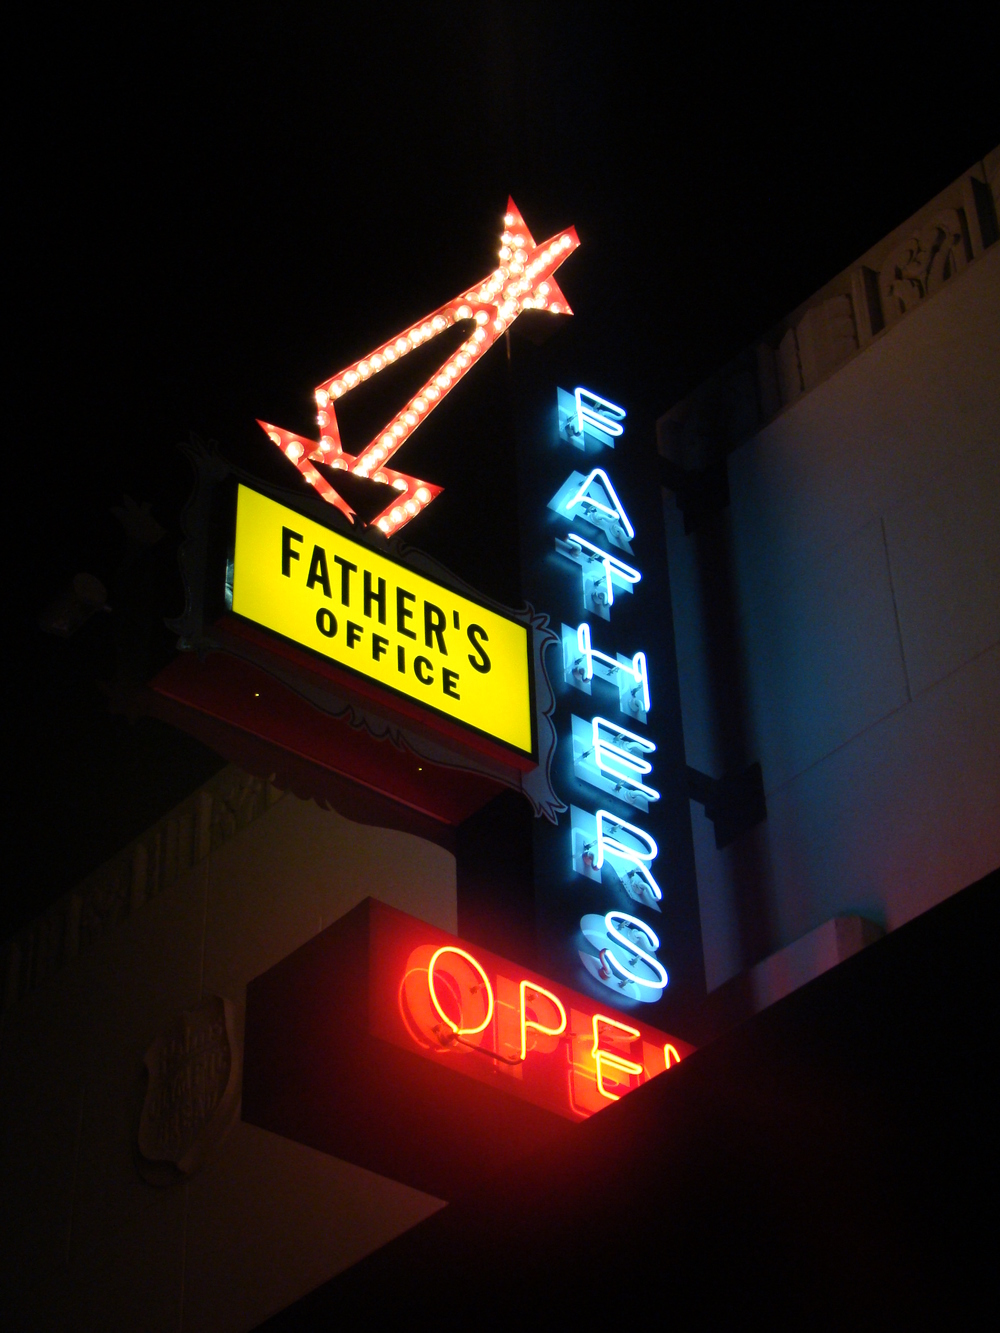 Father's Office | Photo Credit: Vmiramontes [flickr]